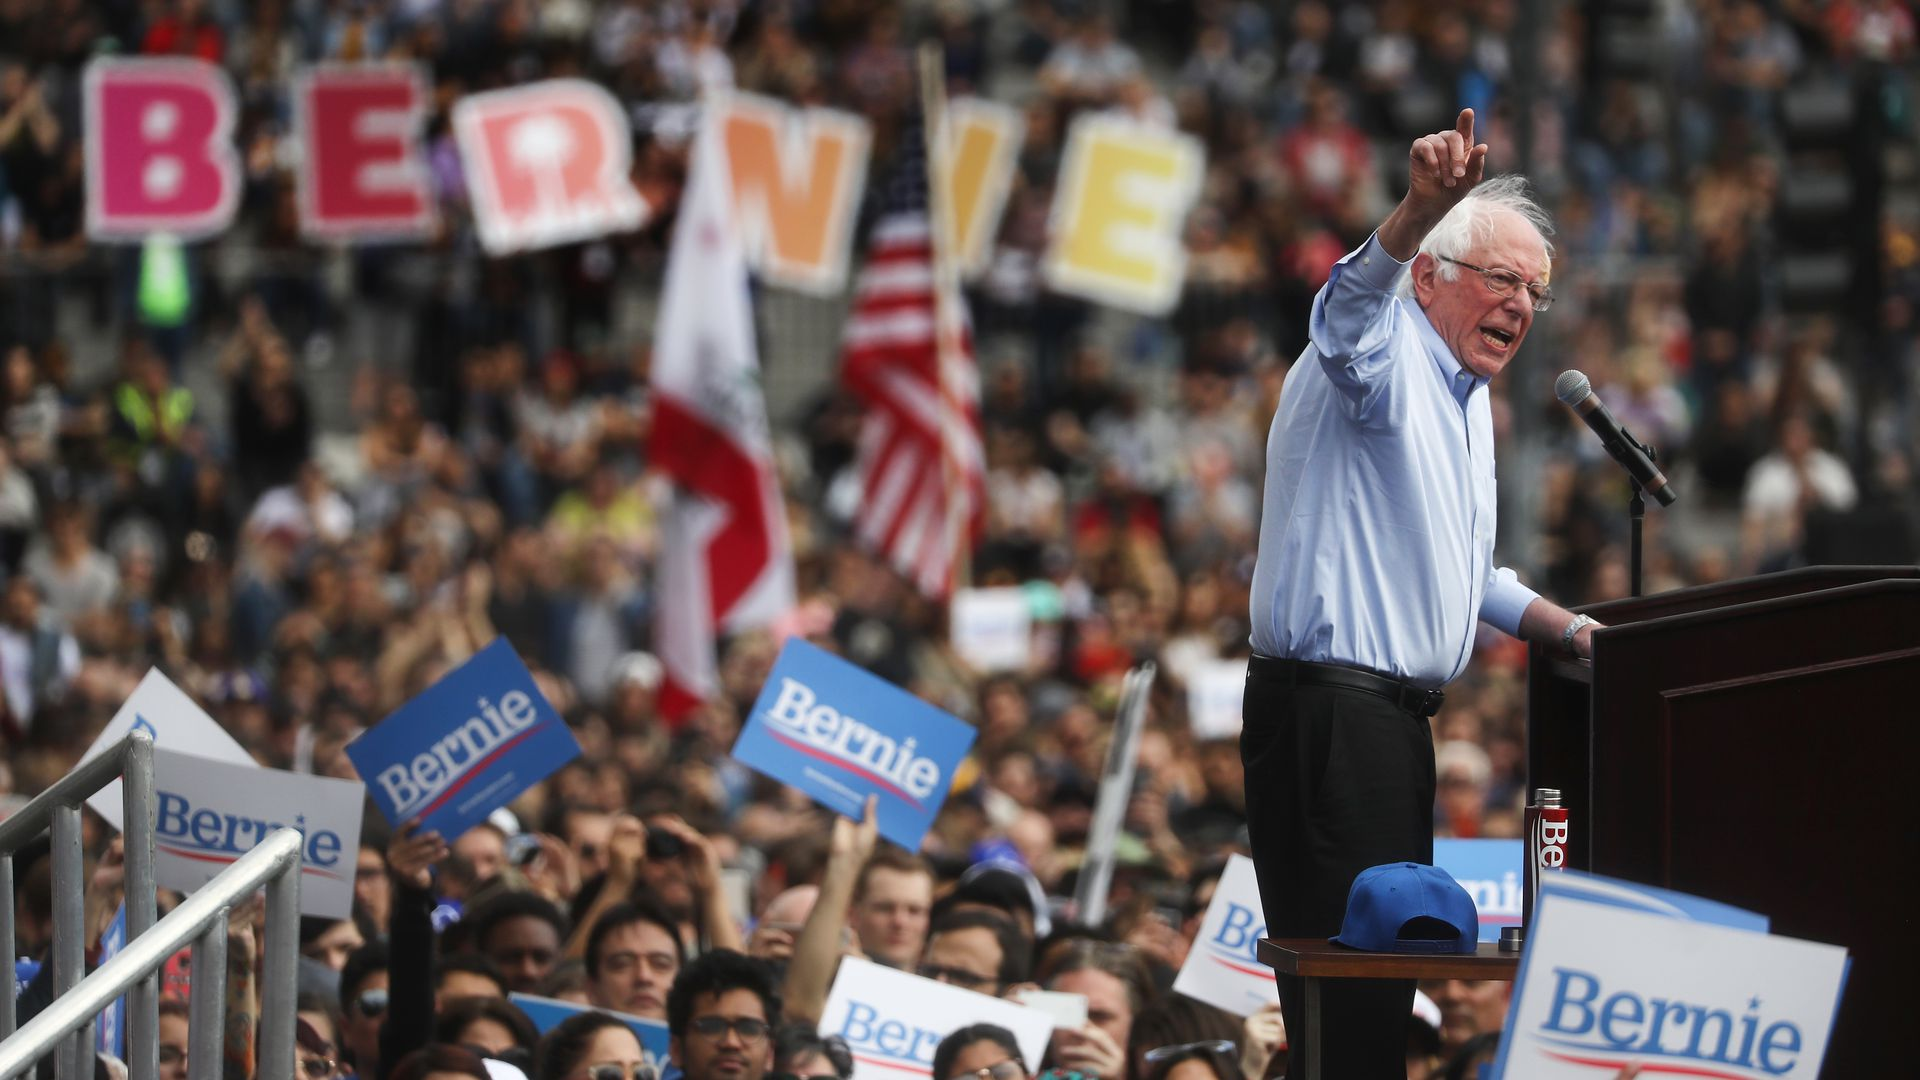 2020 Democratic presidential candidate, Sen. Bernie Sanders (I-Vt.) at a campaign rally last month in California.